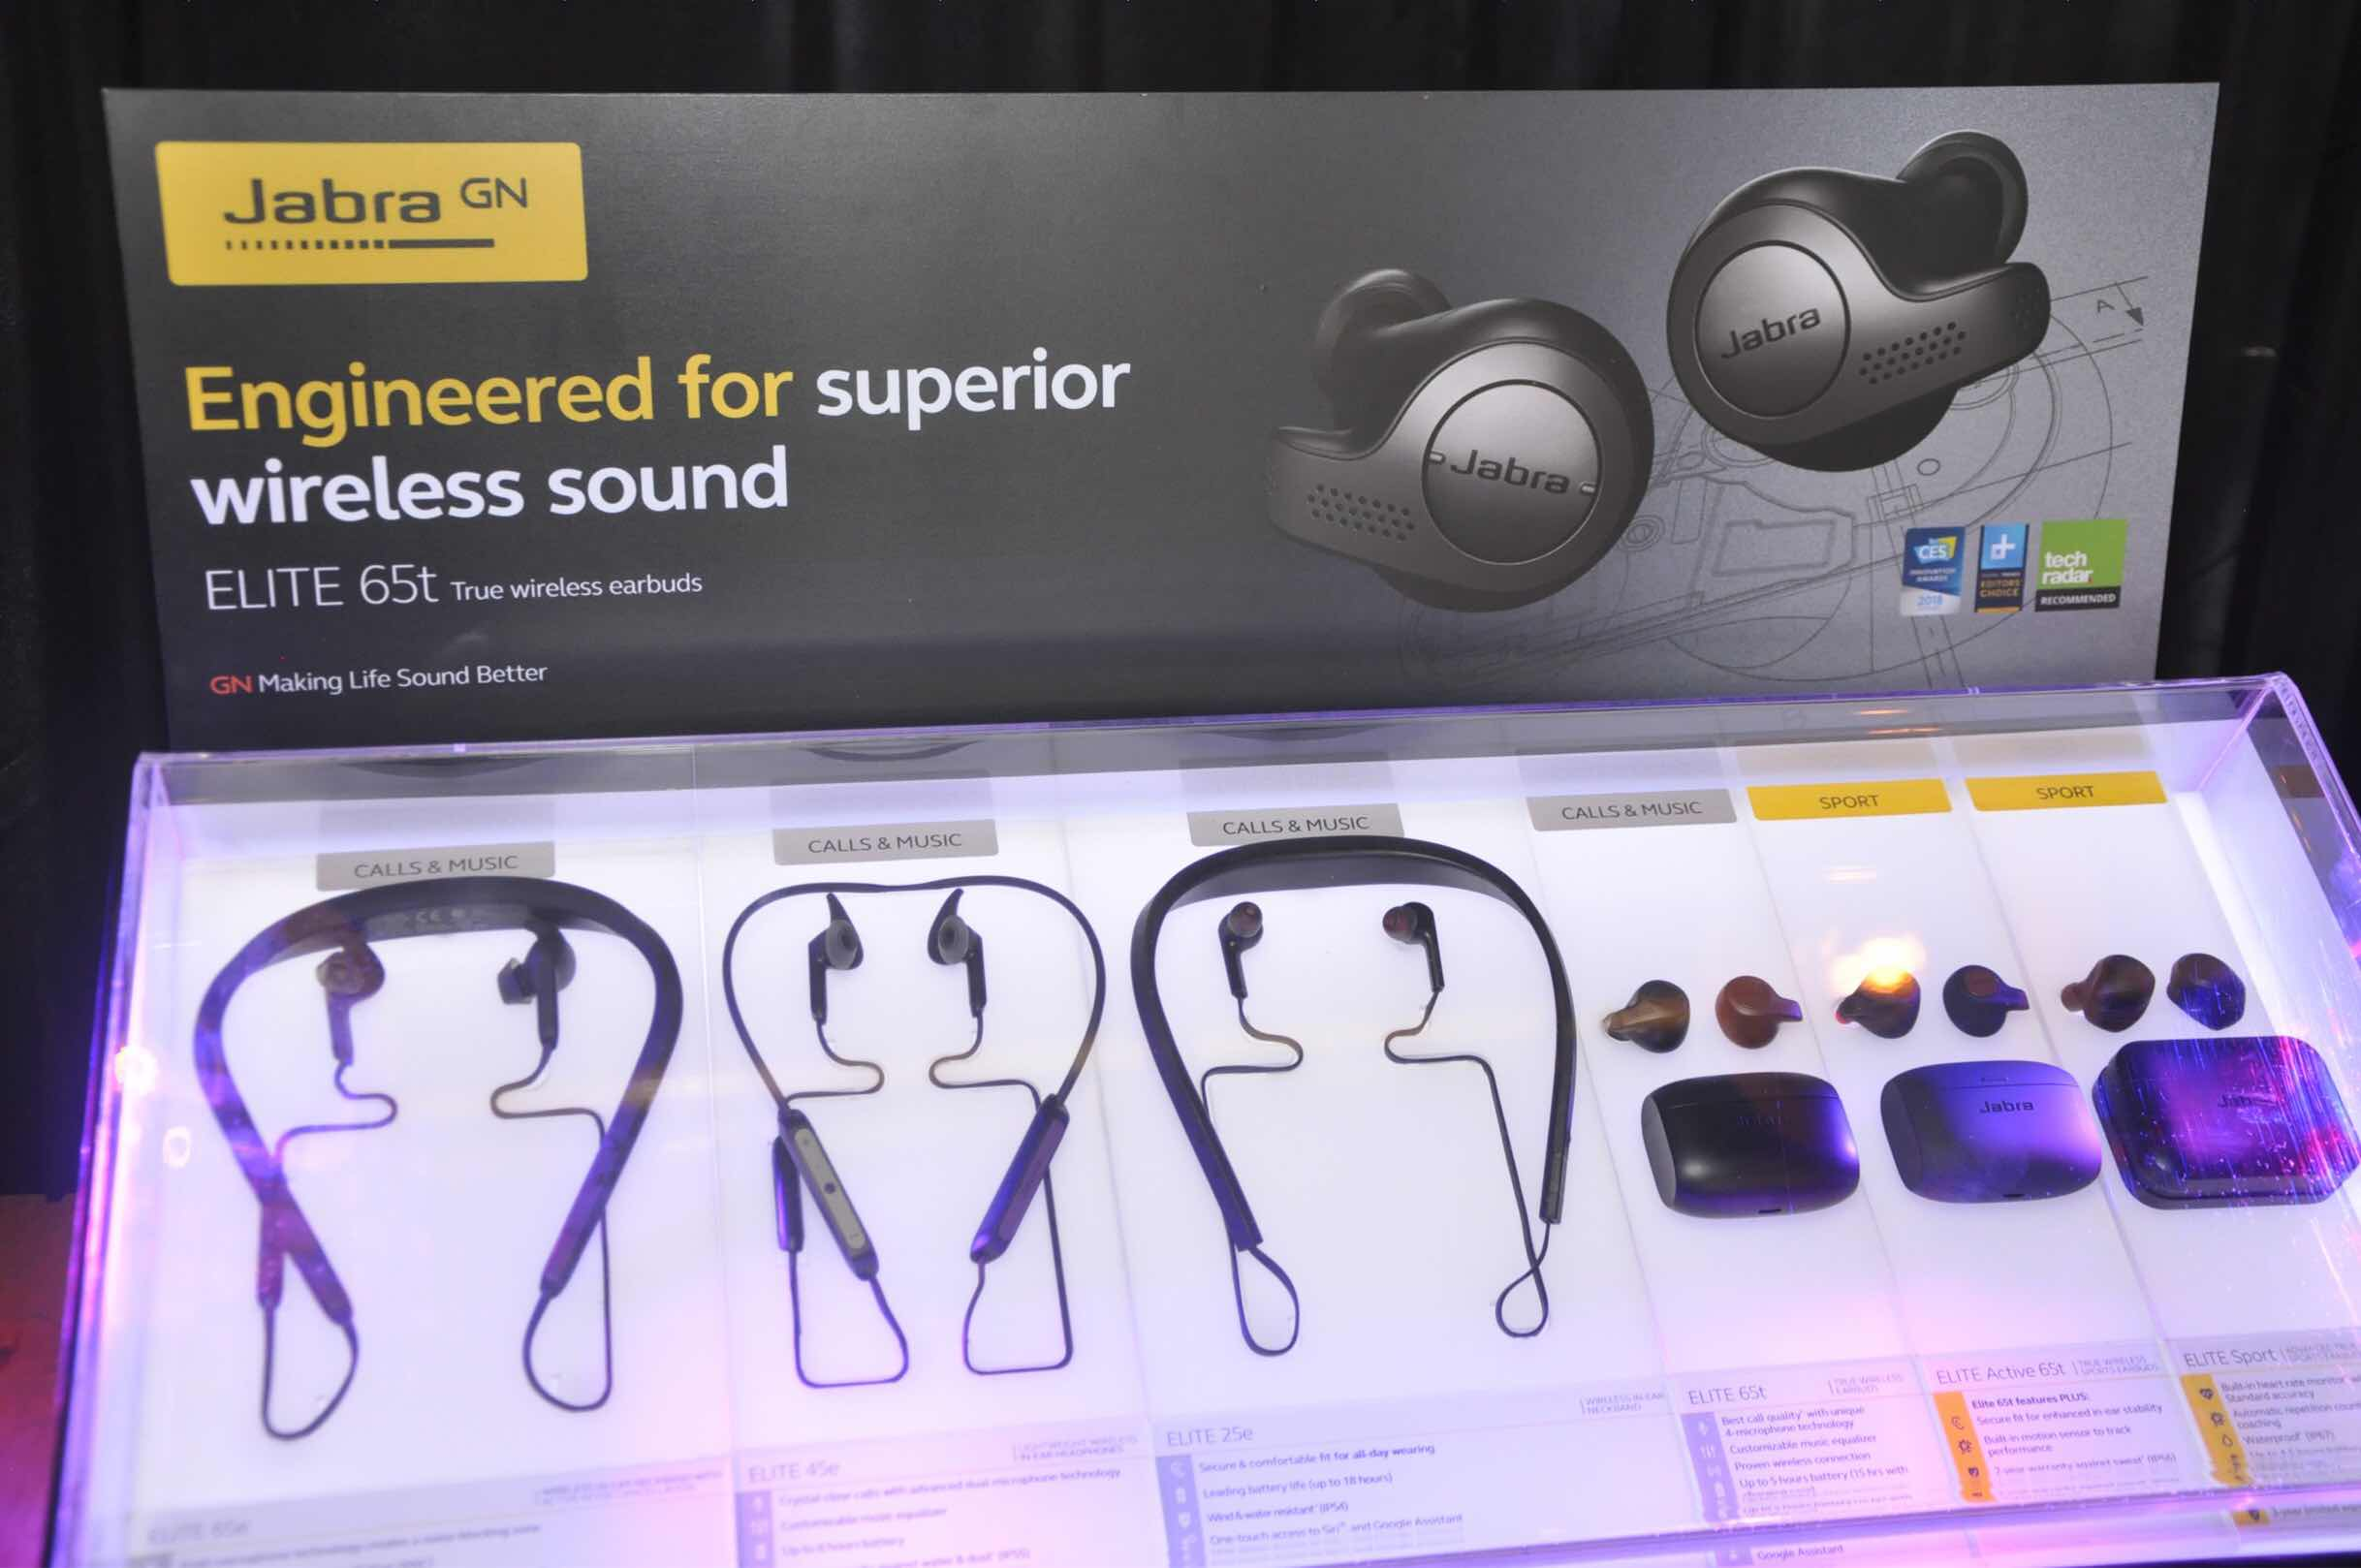 761eae71a8b Jabra is launching fournewest members of the Elite series in the  Philippines - the Elite 45e, Elite 65t, Elite Active 65t, and Elite 65e.